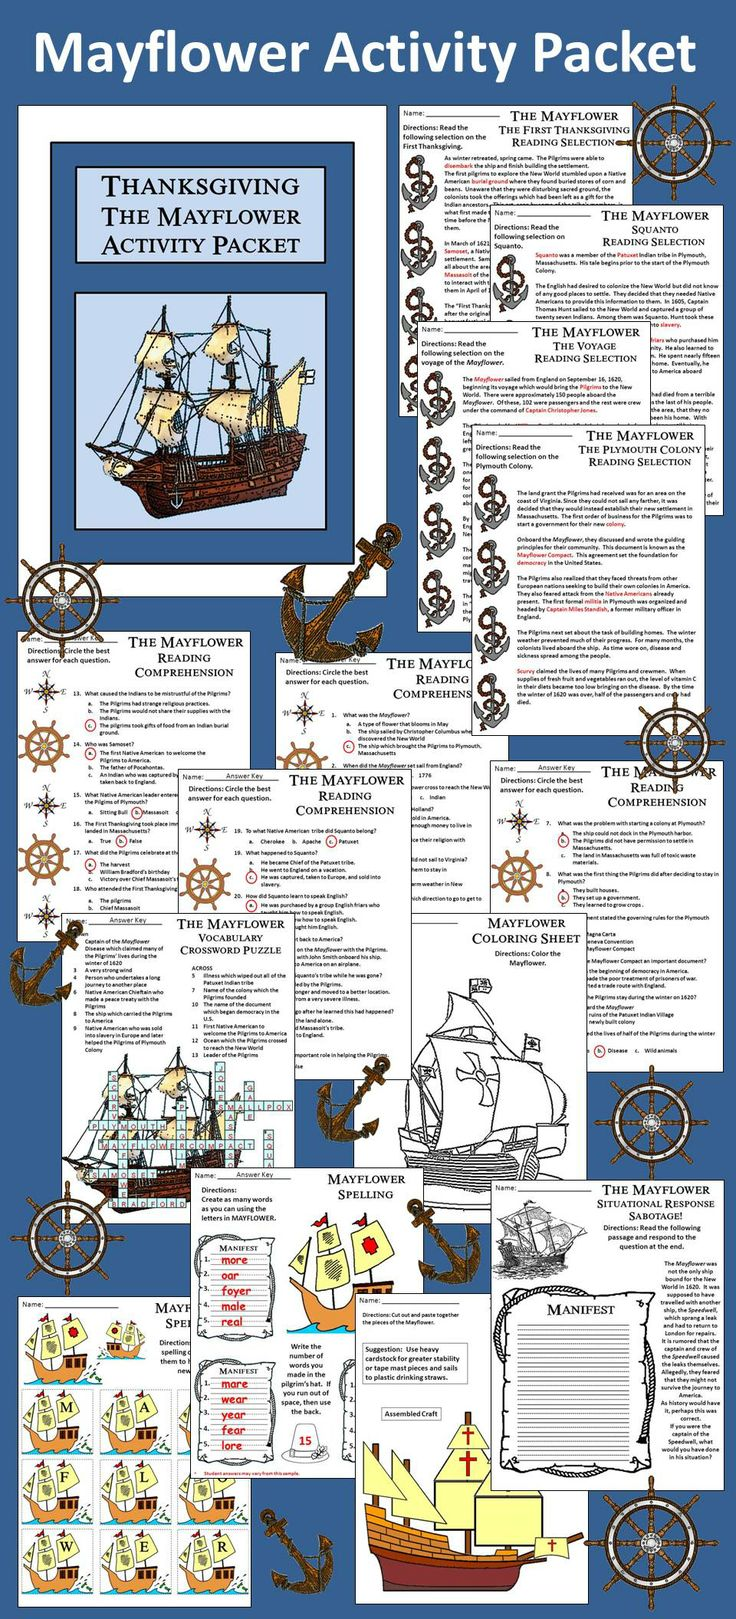 Mayflower Activity Packet: This colorful activity packet details the history of…